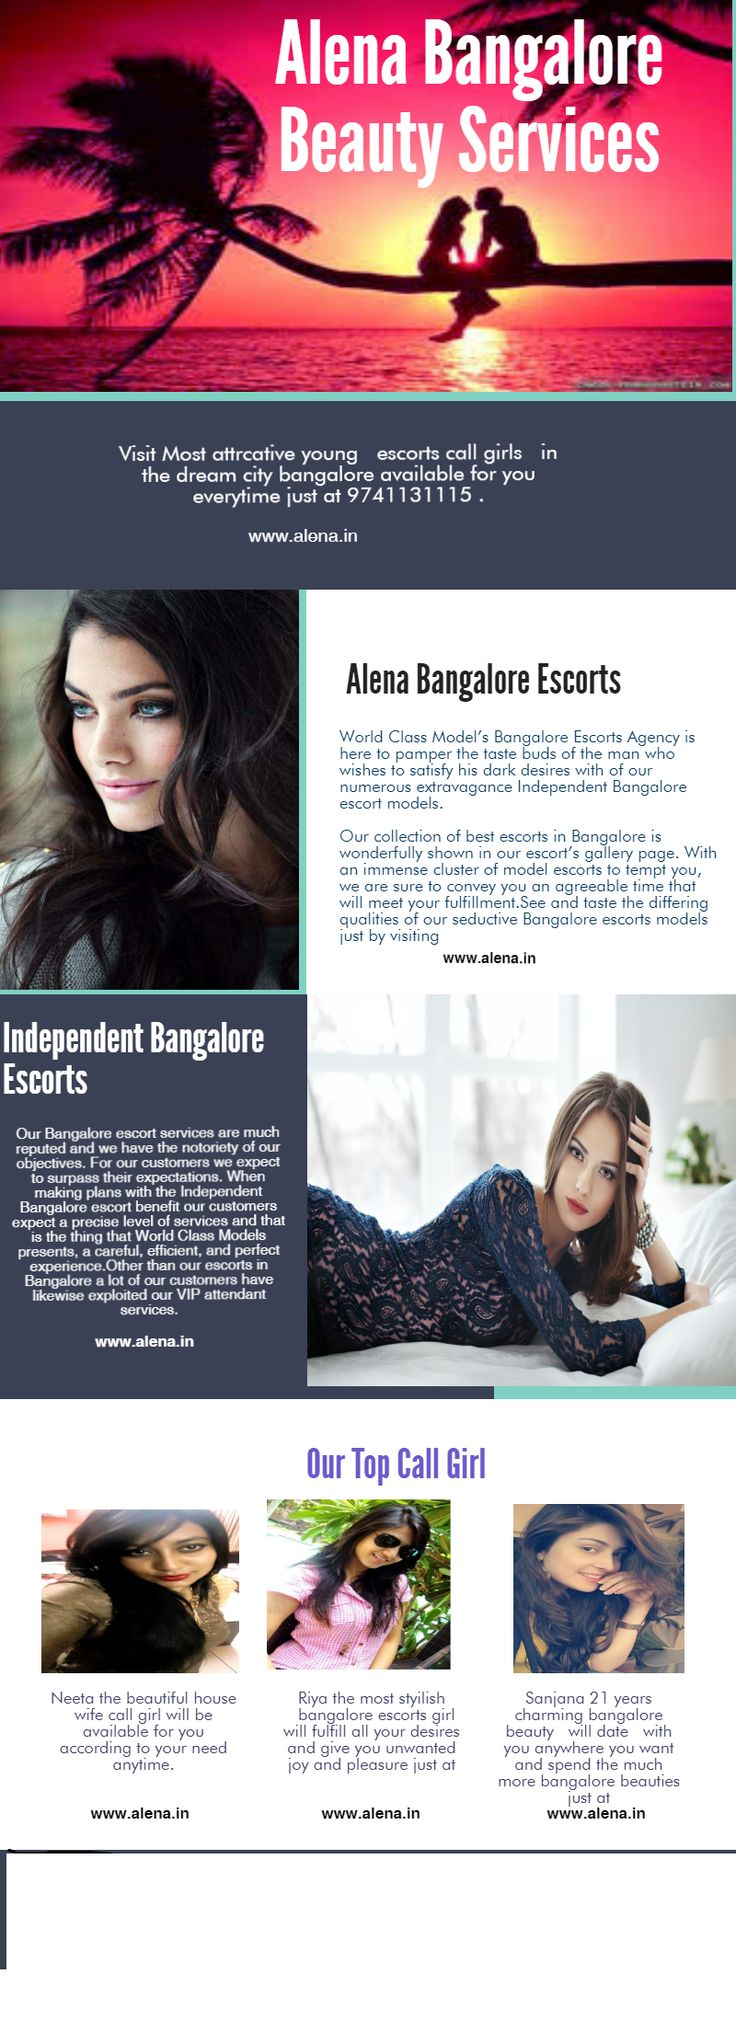 Find this amazing services of bangalore girls anywhere just by visiting www.alena.in